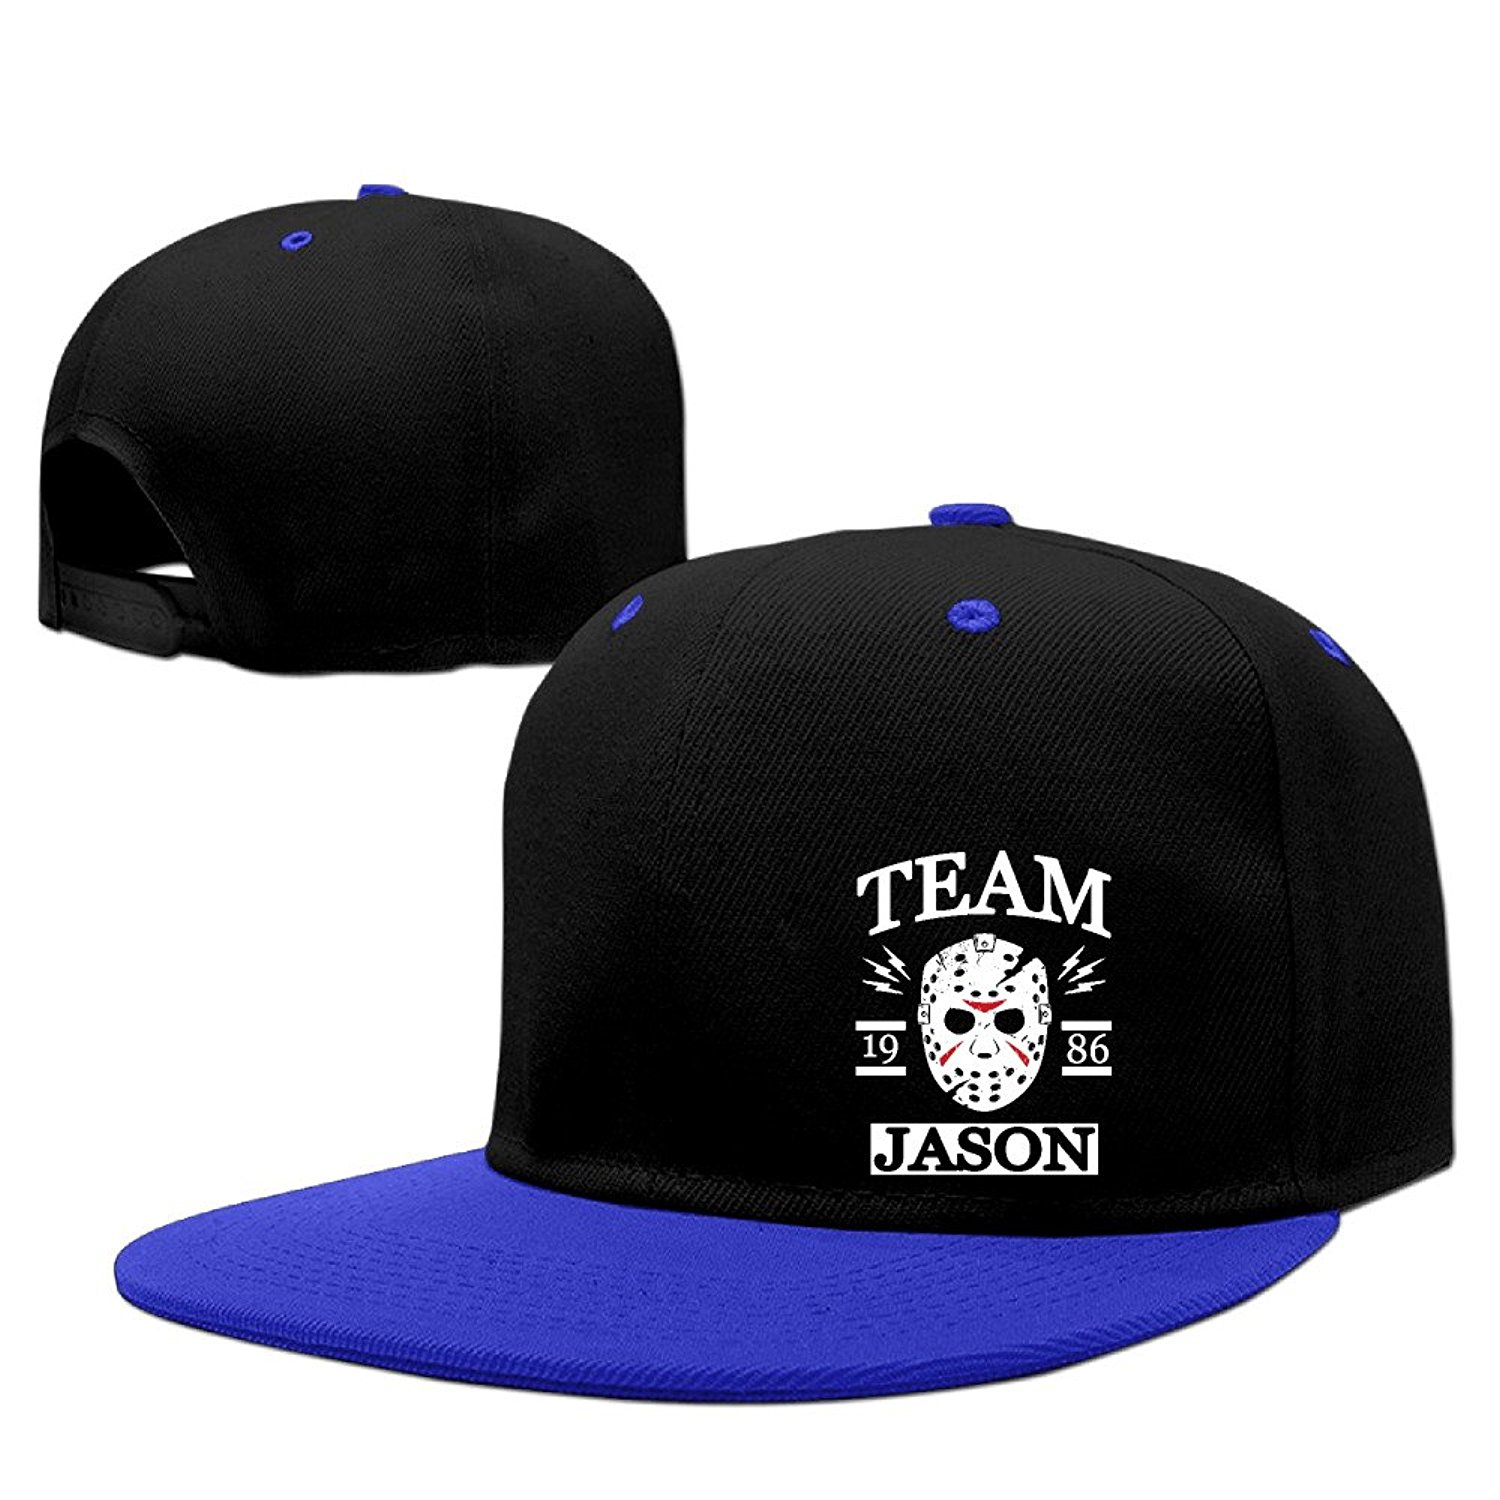 3d98be63fc8 Get Quotations · Team Jason Friday The 13th Baseball Caps Hat Snapback  Cotton